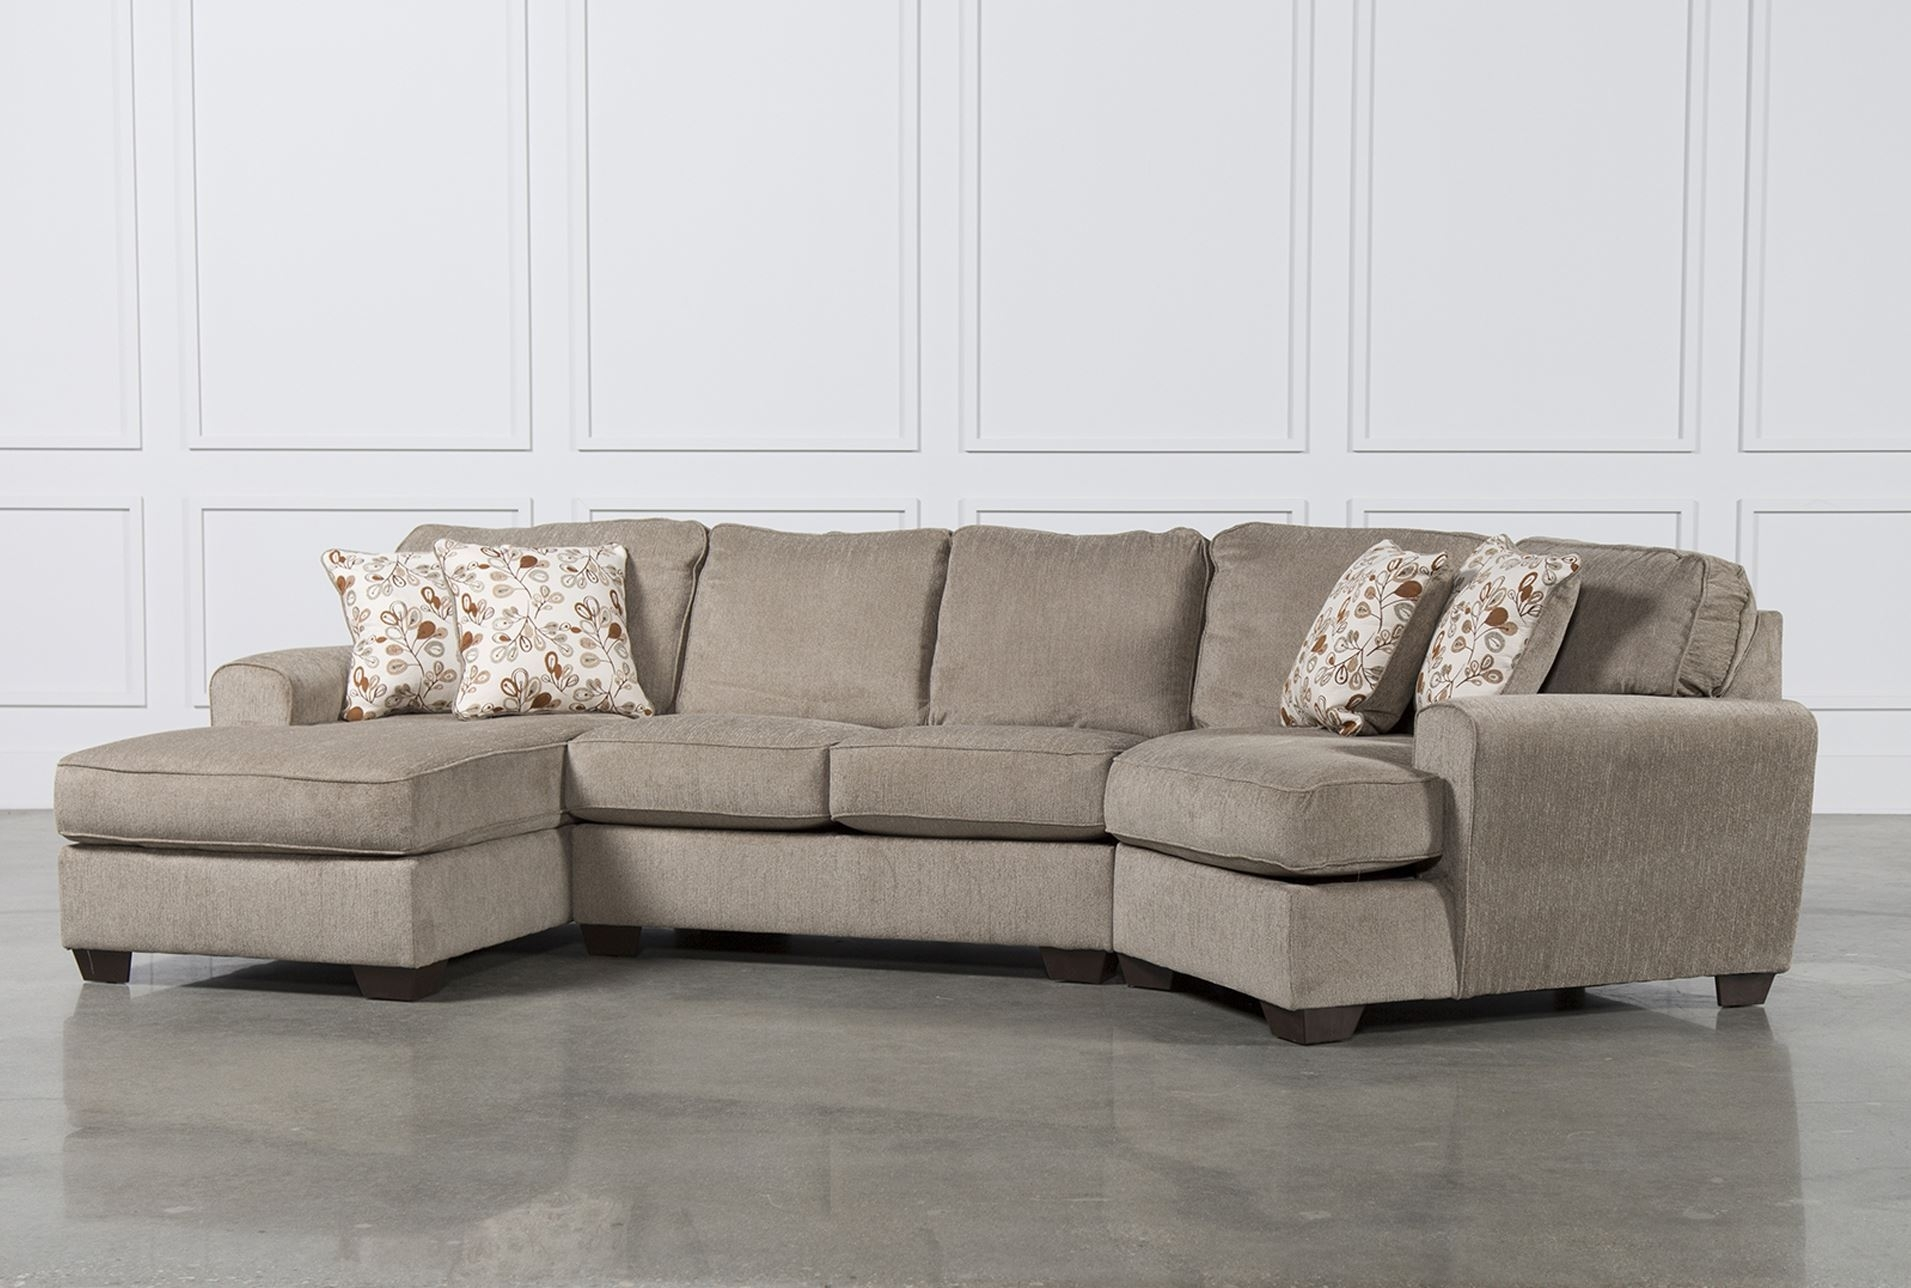 Fancy Sectional Sofa With Cuddler 52 For Contemporary Sofa With Regard To Sectional Sofas With Cuddler Chaise (View 3 of 10)